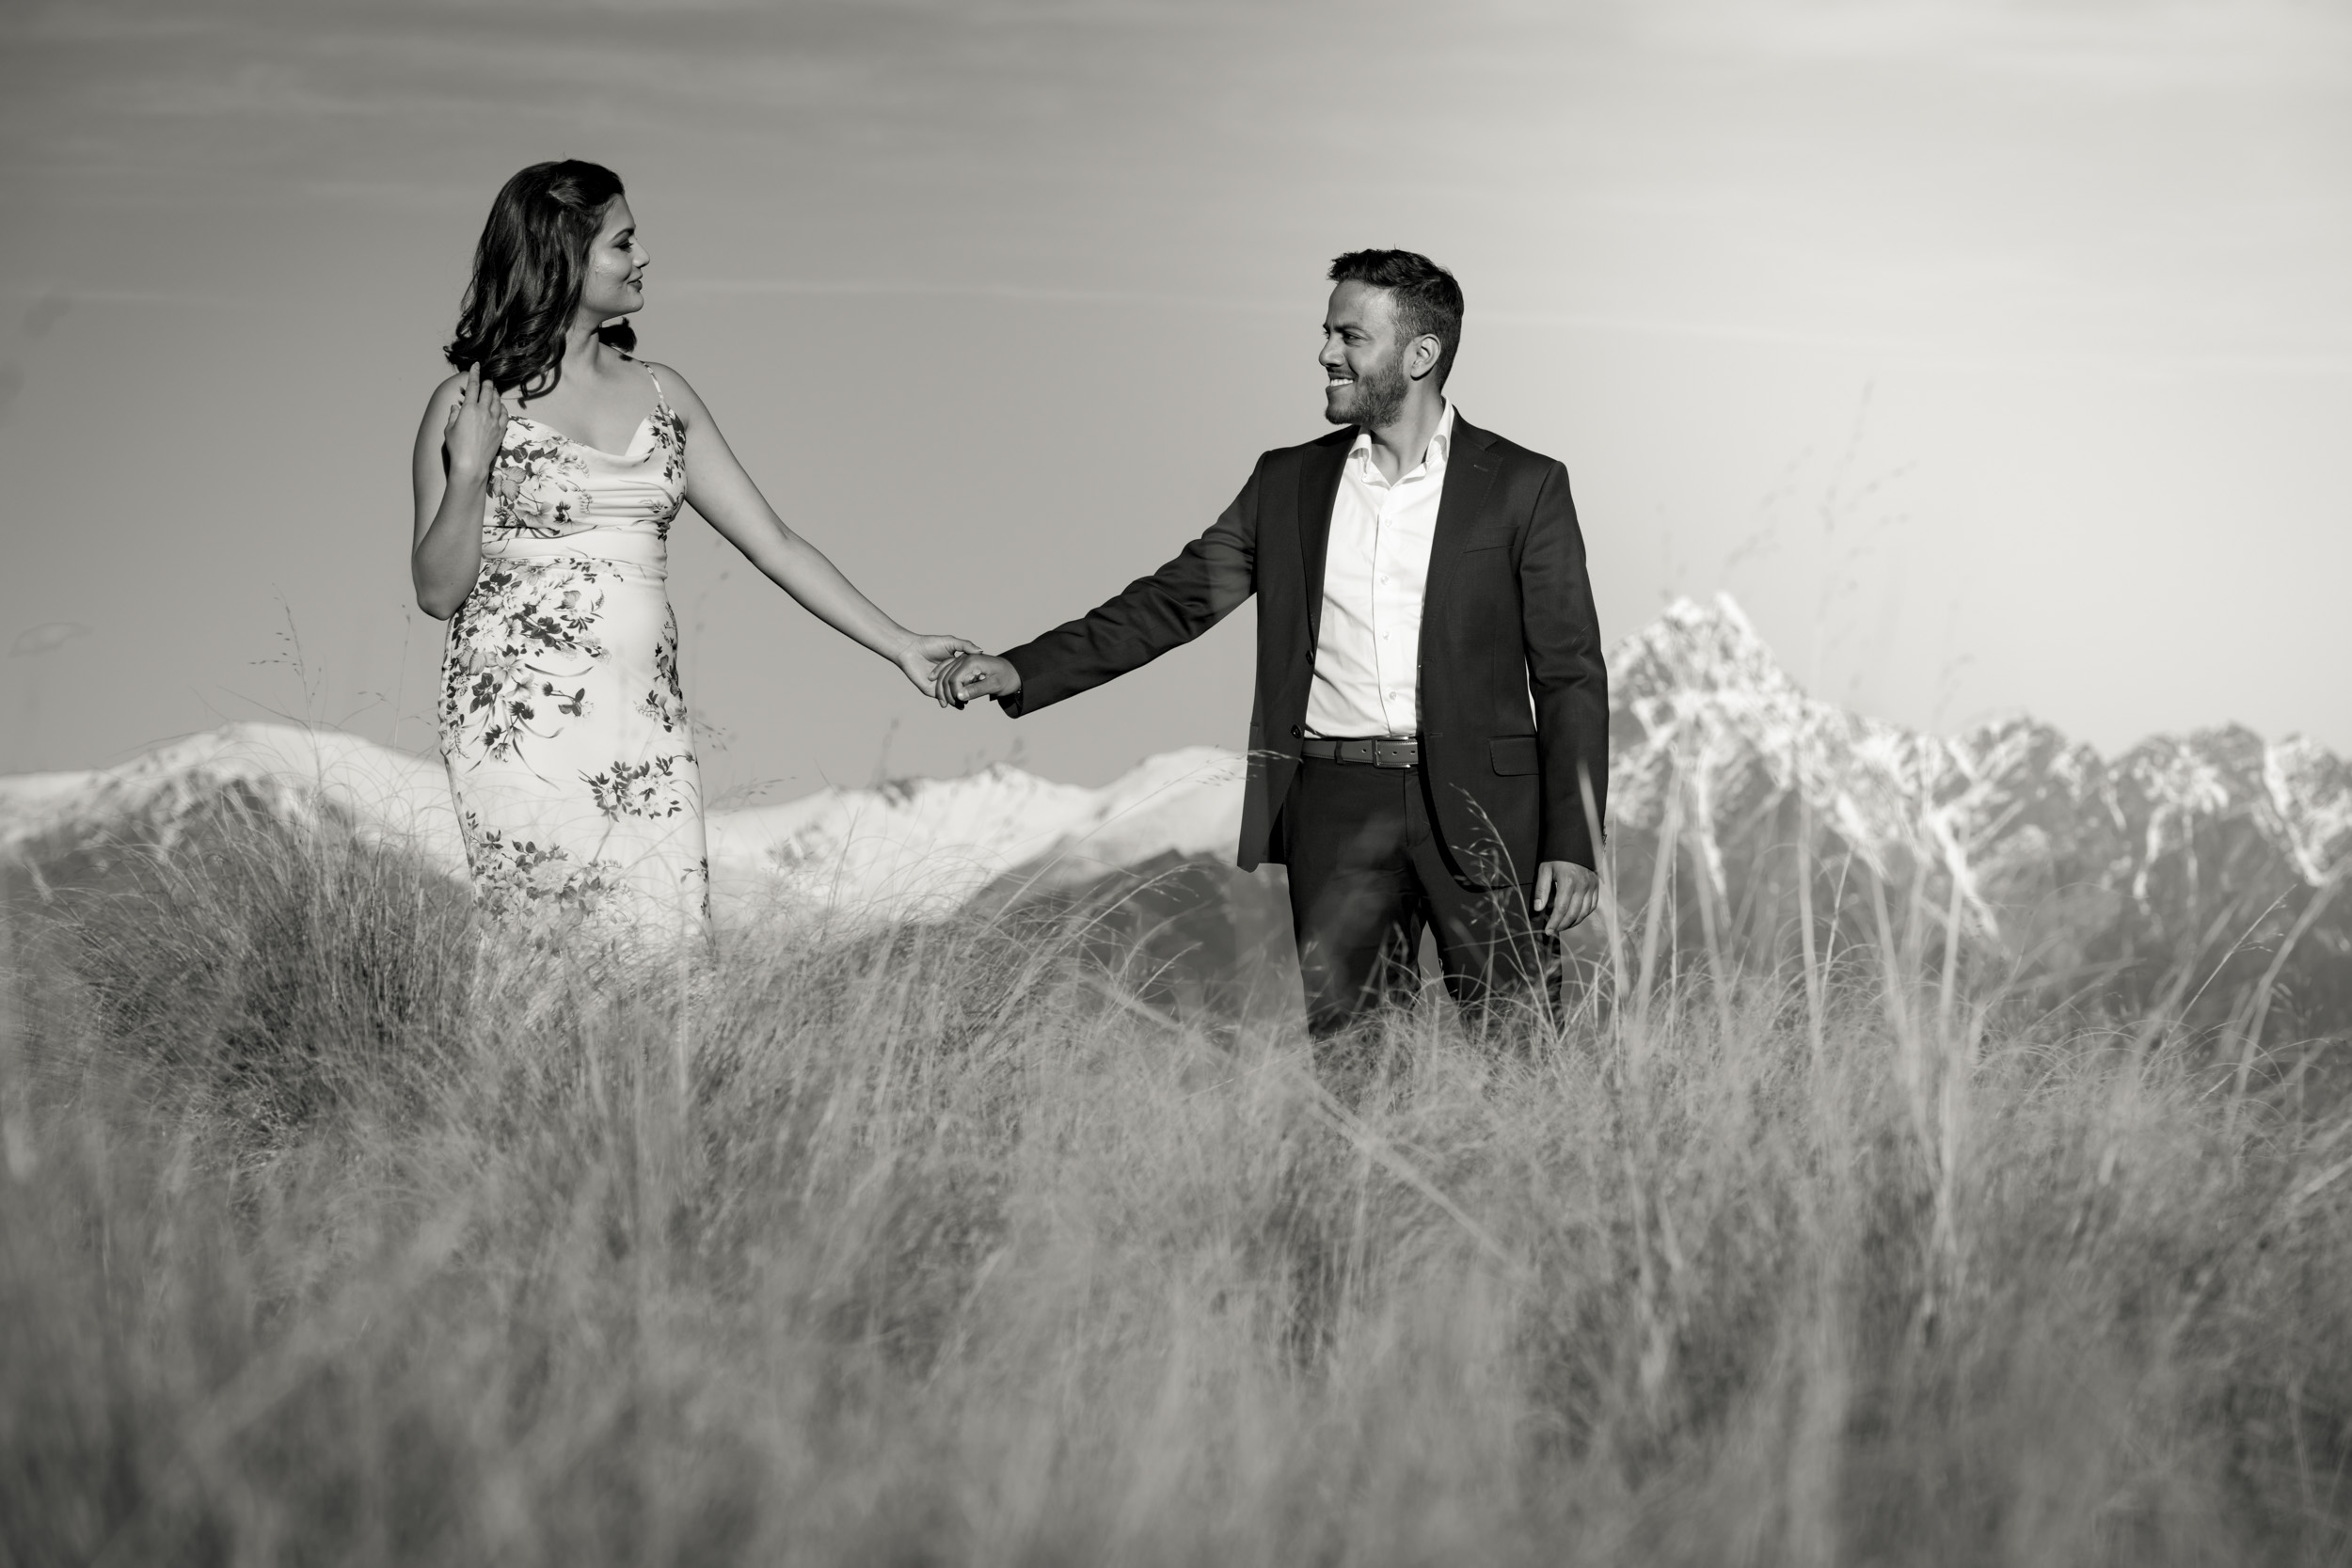 Queenstown offer the perfect backdrop for your professional engagement photographs